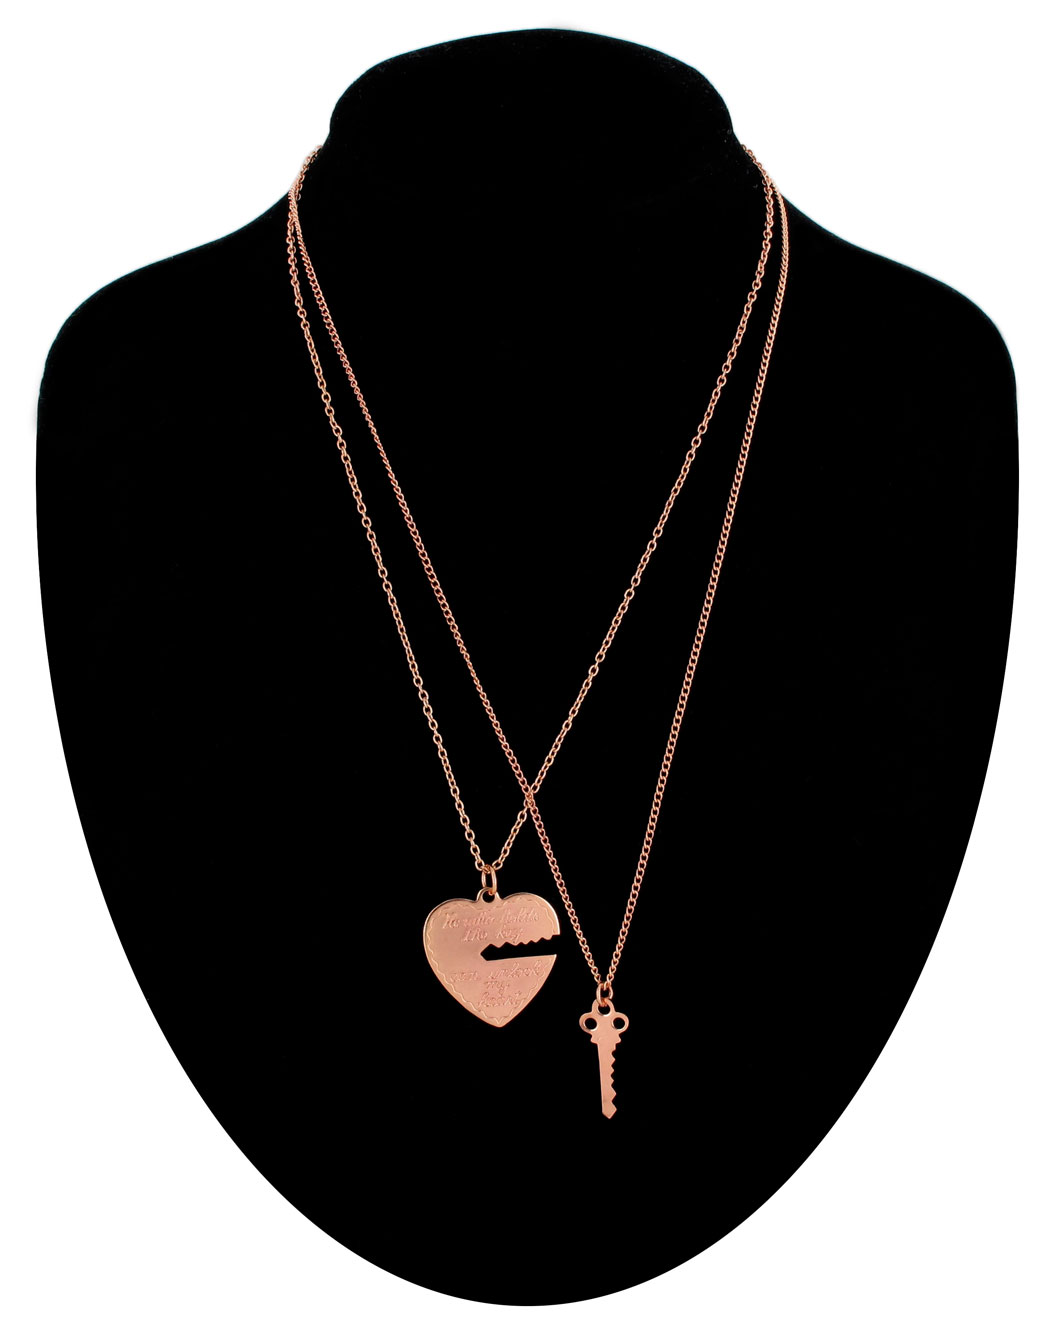 Ky & Co Pendant Necklace Set Key To My Heart Sweetheart Couples Rose Gold Tone USA Made Thumbnail 1